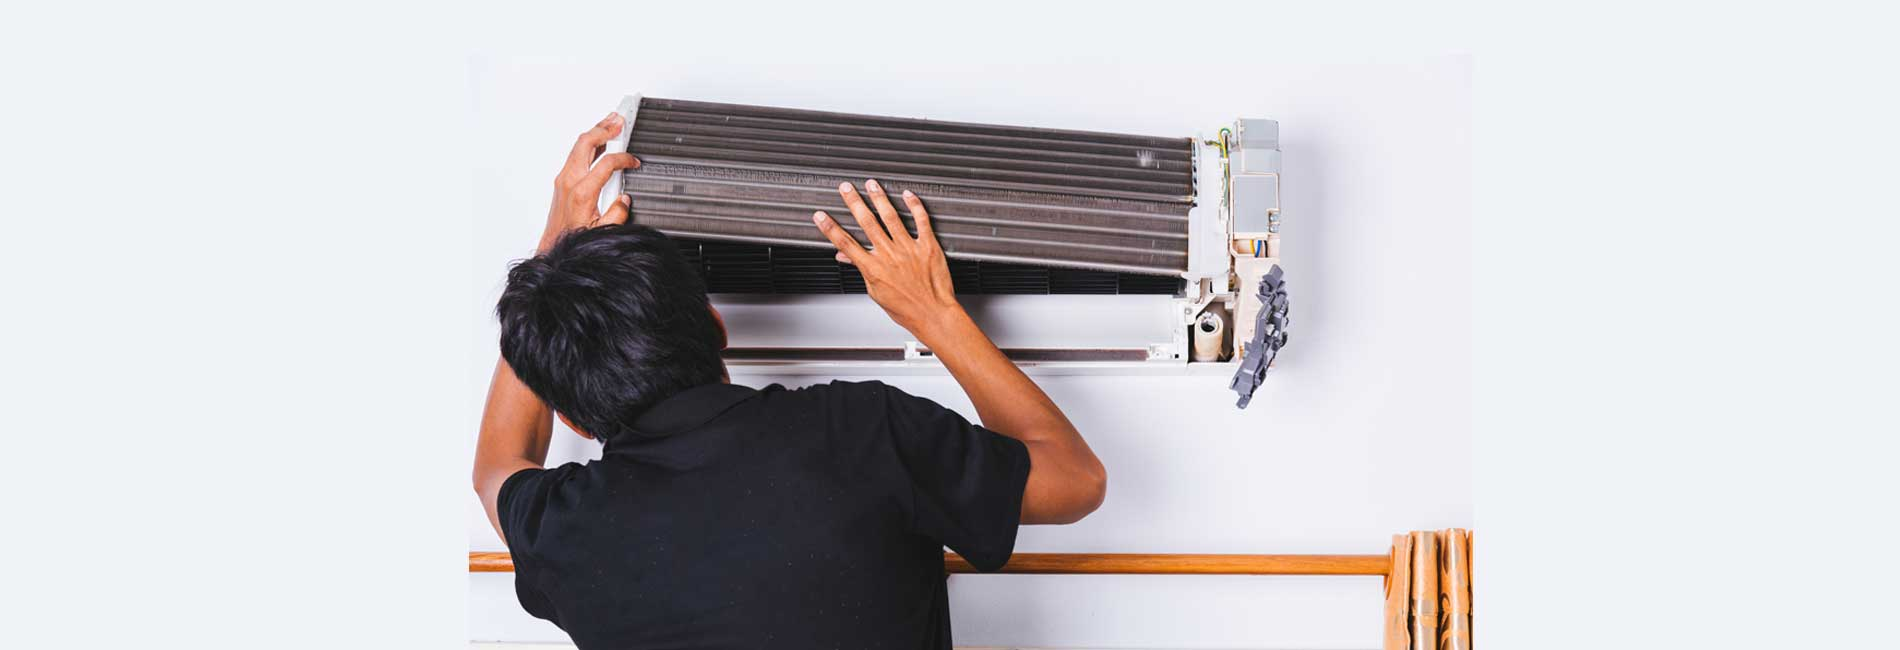 Whirlpool AC Installation in Pakkam